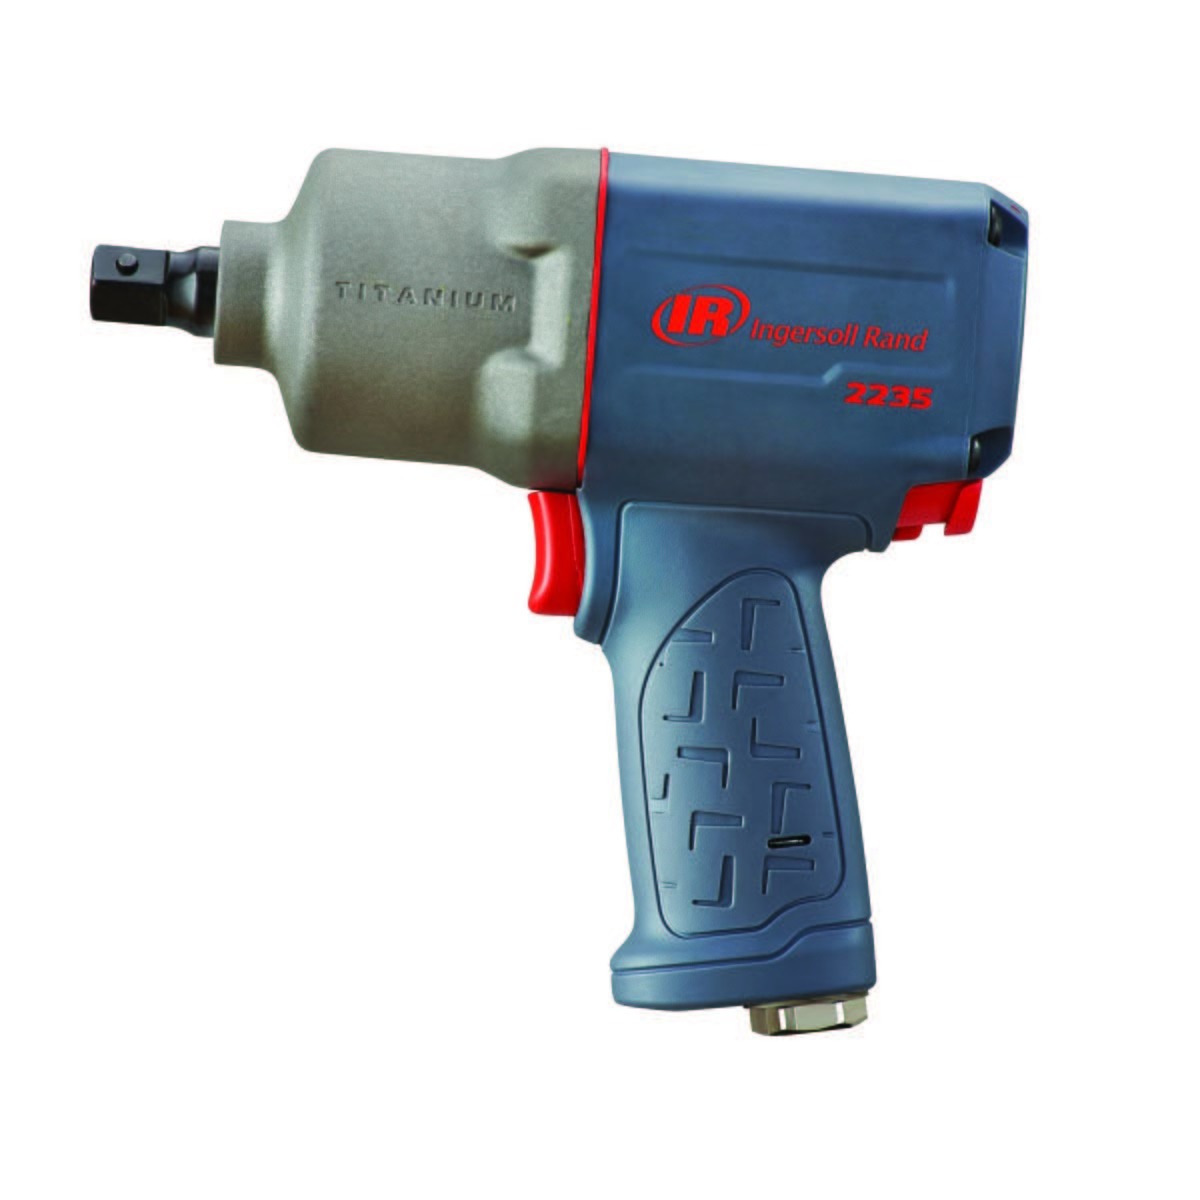 1/2-In Drive Pin Anvil Titanium Impact Wrench - 930 Ft-Lbs Max Torque